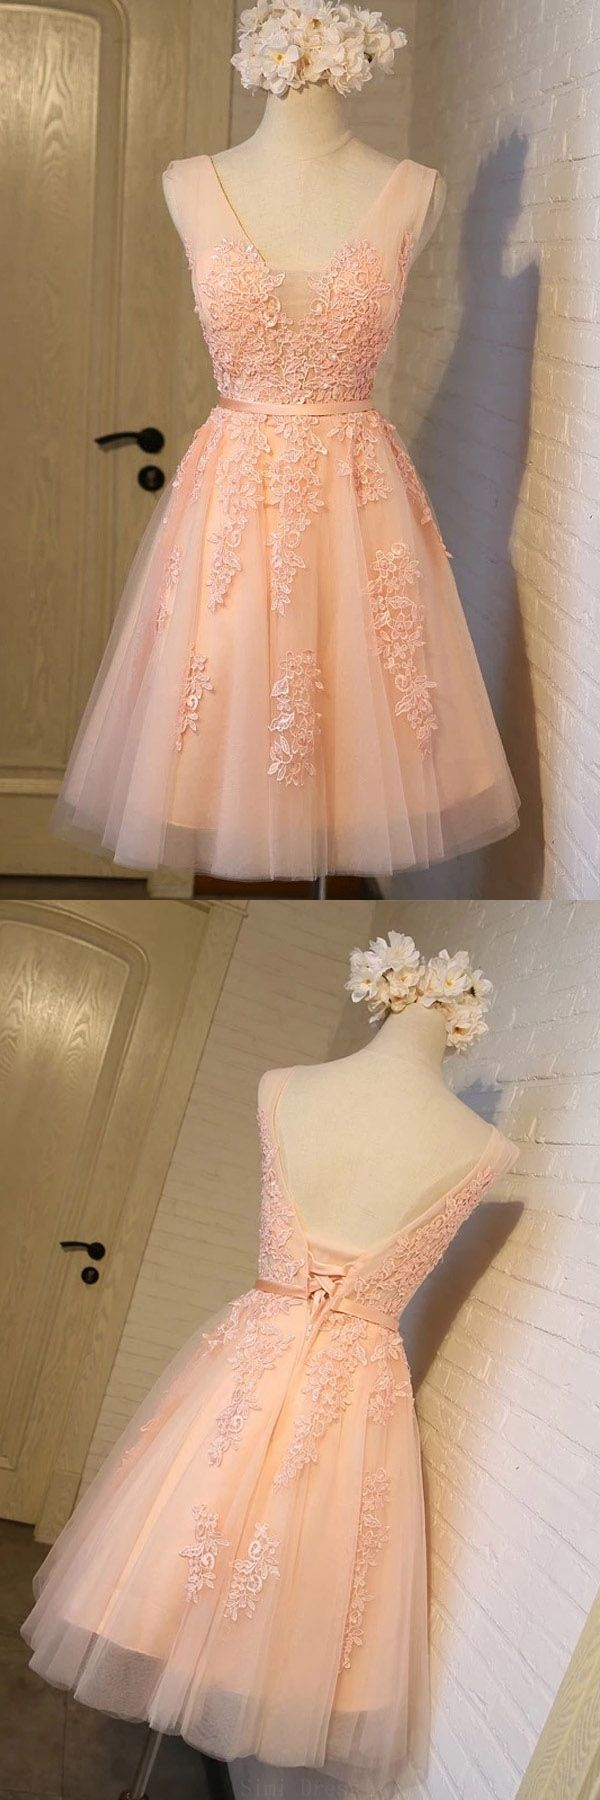 Discount delightful prom dresses charming tulle cute homecoming